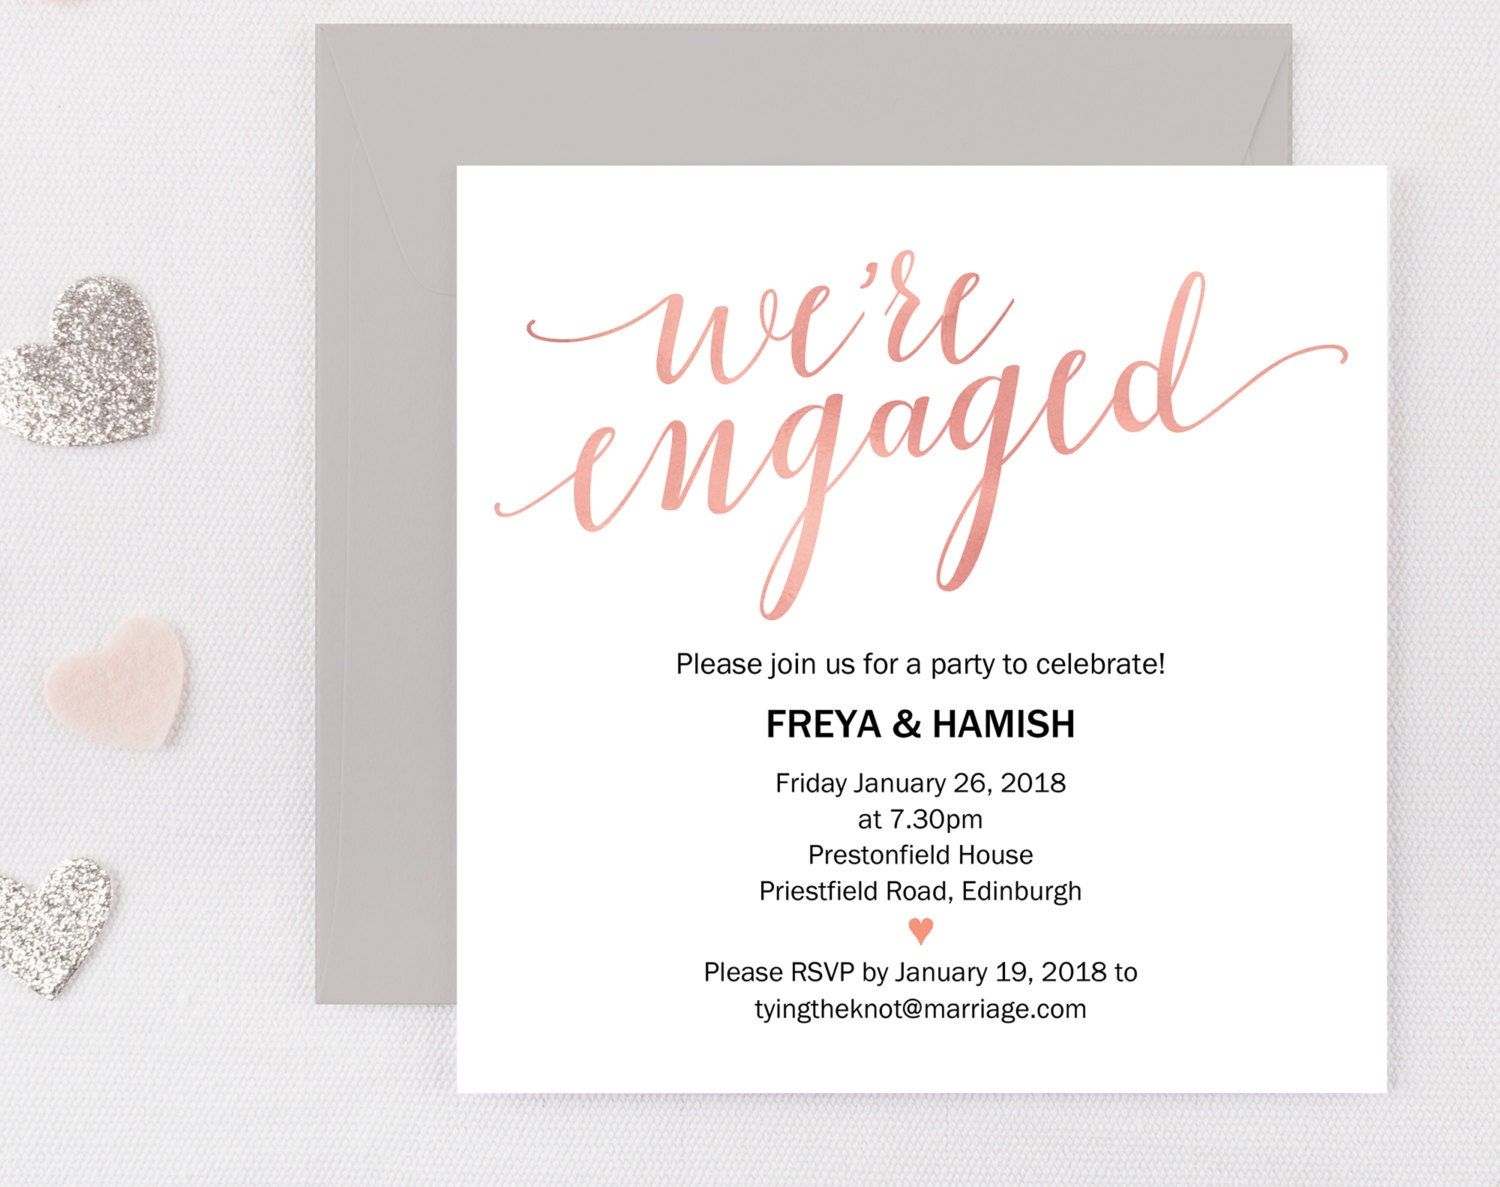 Engagement Party Invitation Engagement Party Invite  Engaged Announcement Printable Invitation Editable PDF Engagement Printable Blush